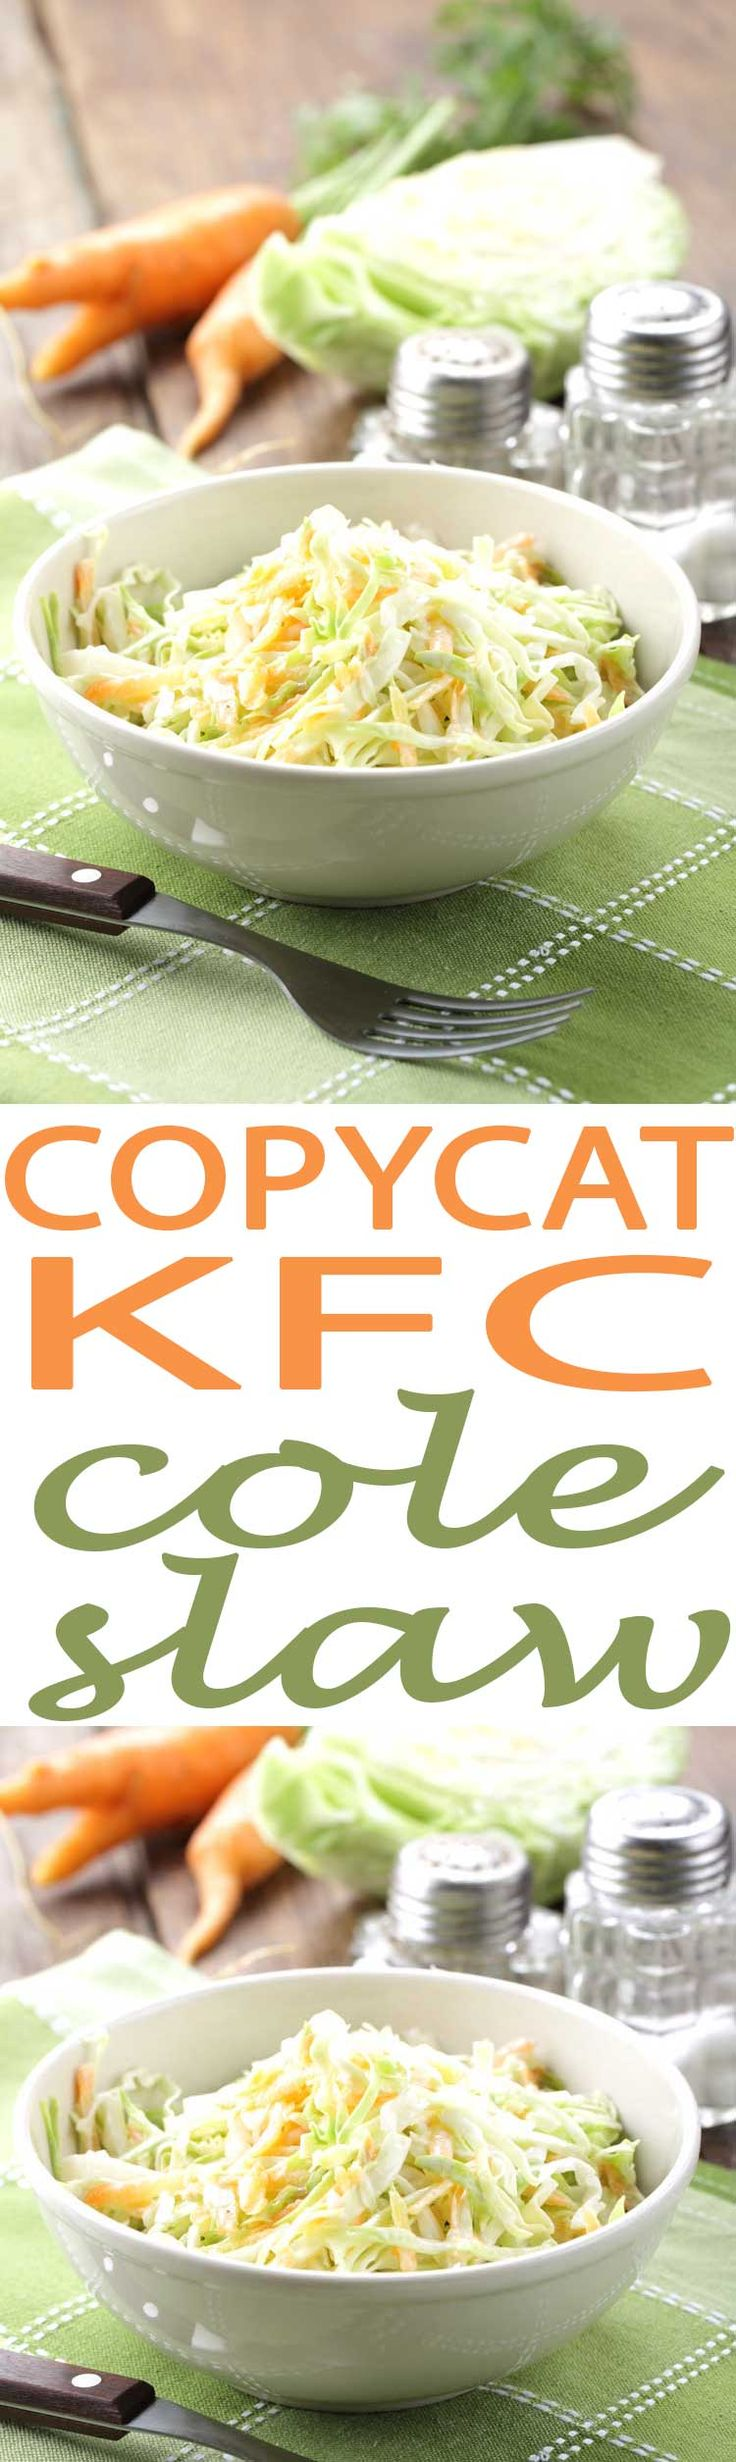 This has got to be the best cole slaw recipe we've tried. Our copycat KFC Cole Slaw is so good, and it is a great side to take to a pot luck or block party. Add this to your must make summer salad recipes.